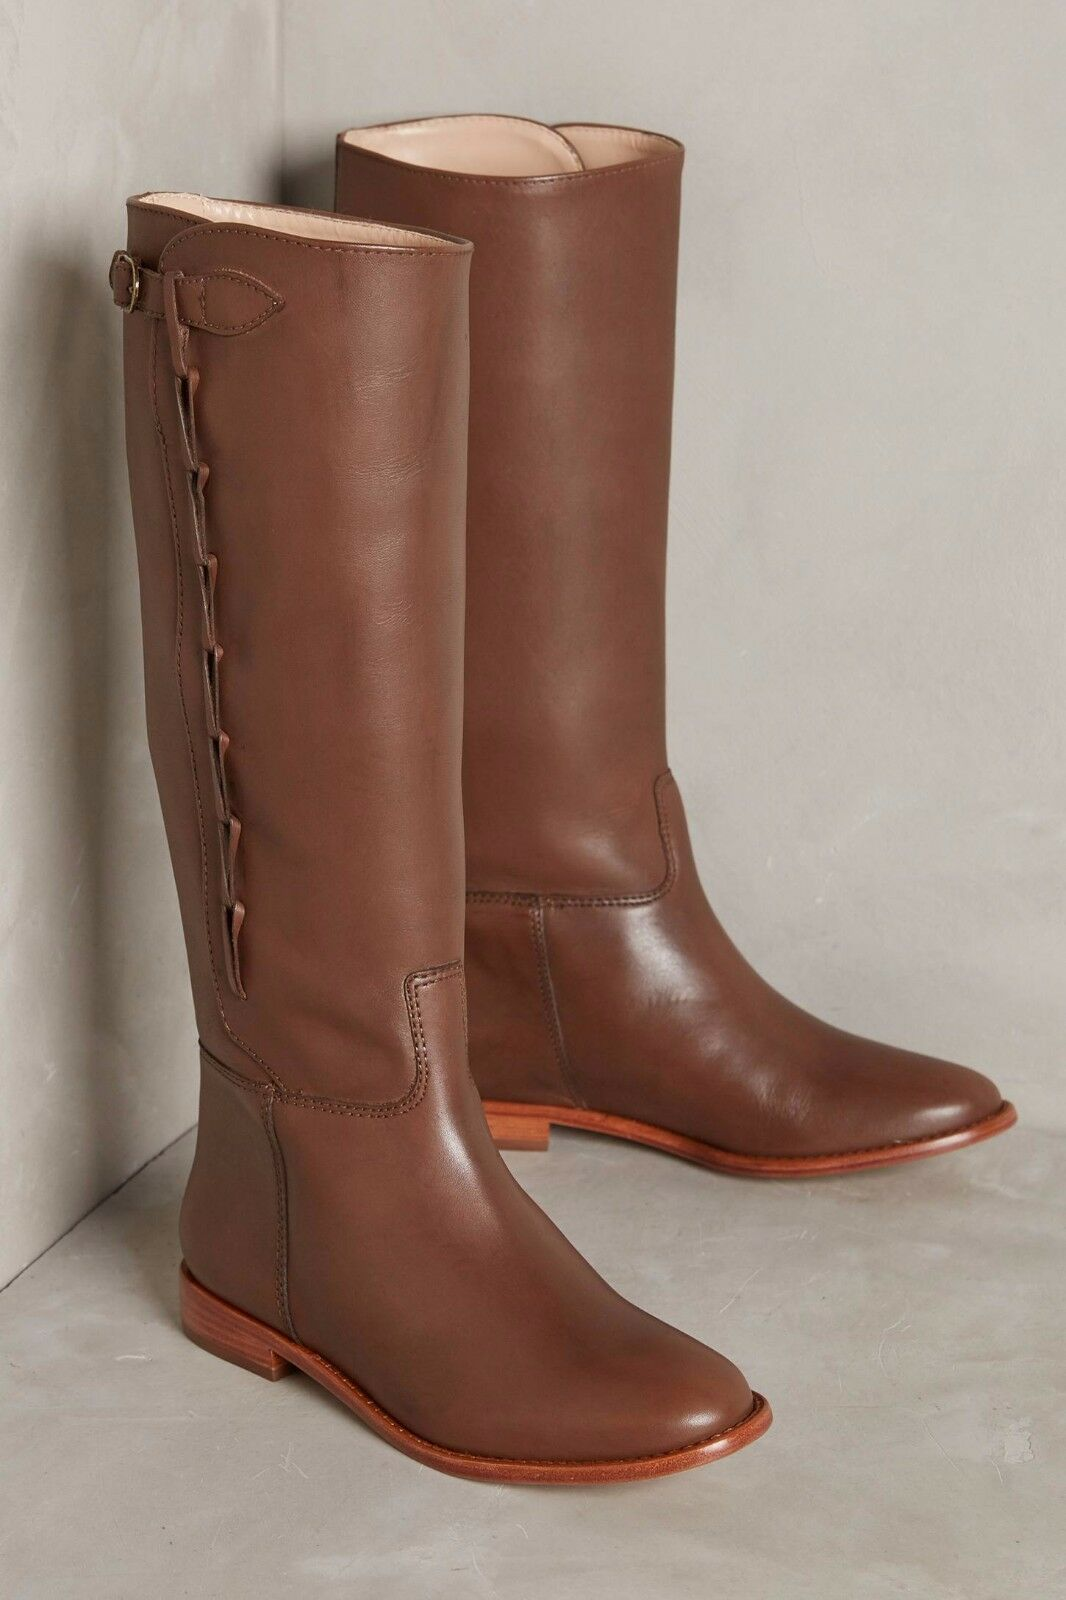 Anthropologie Candela Side-Looped Riding Boots  378 Sz 6, 9.5  - NWOB